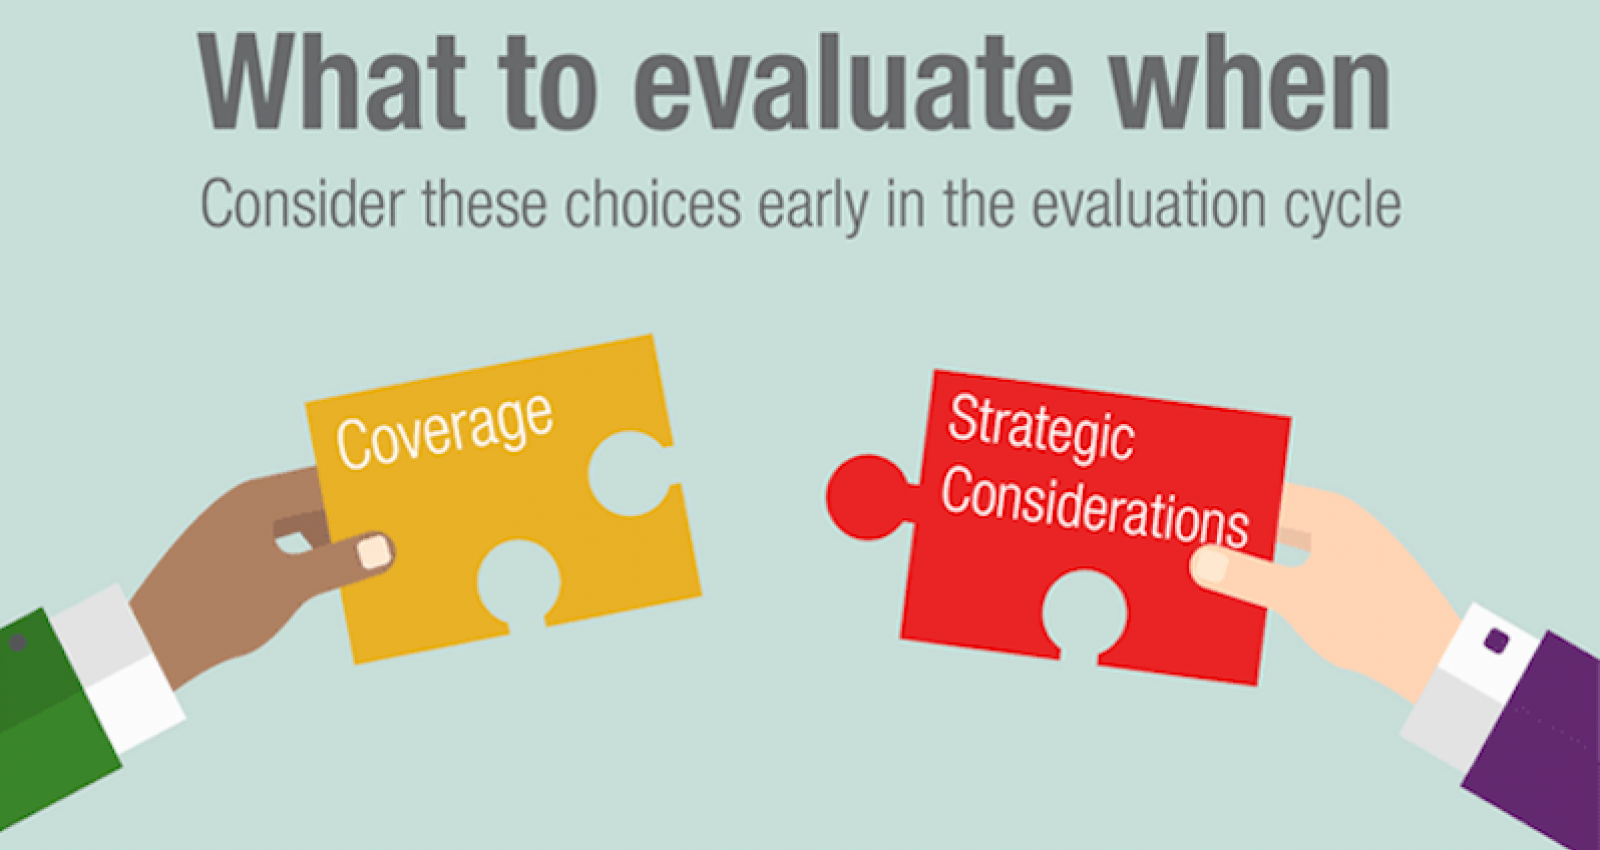 The first step to a great evaluation? Make the right choices